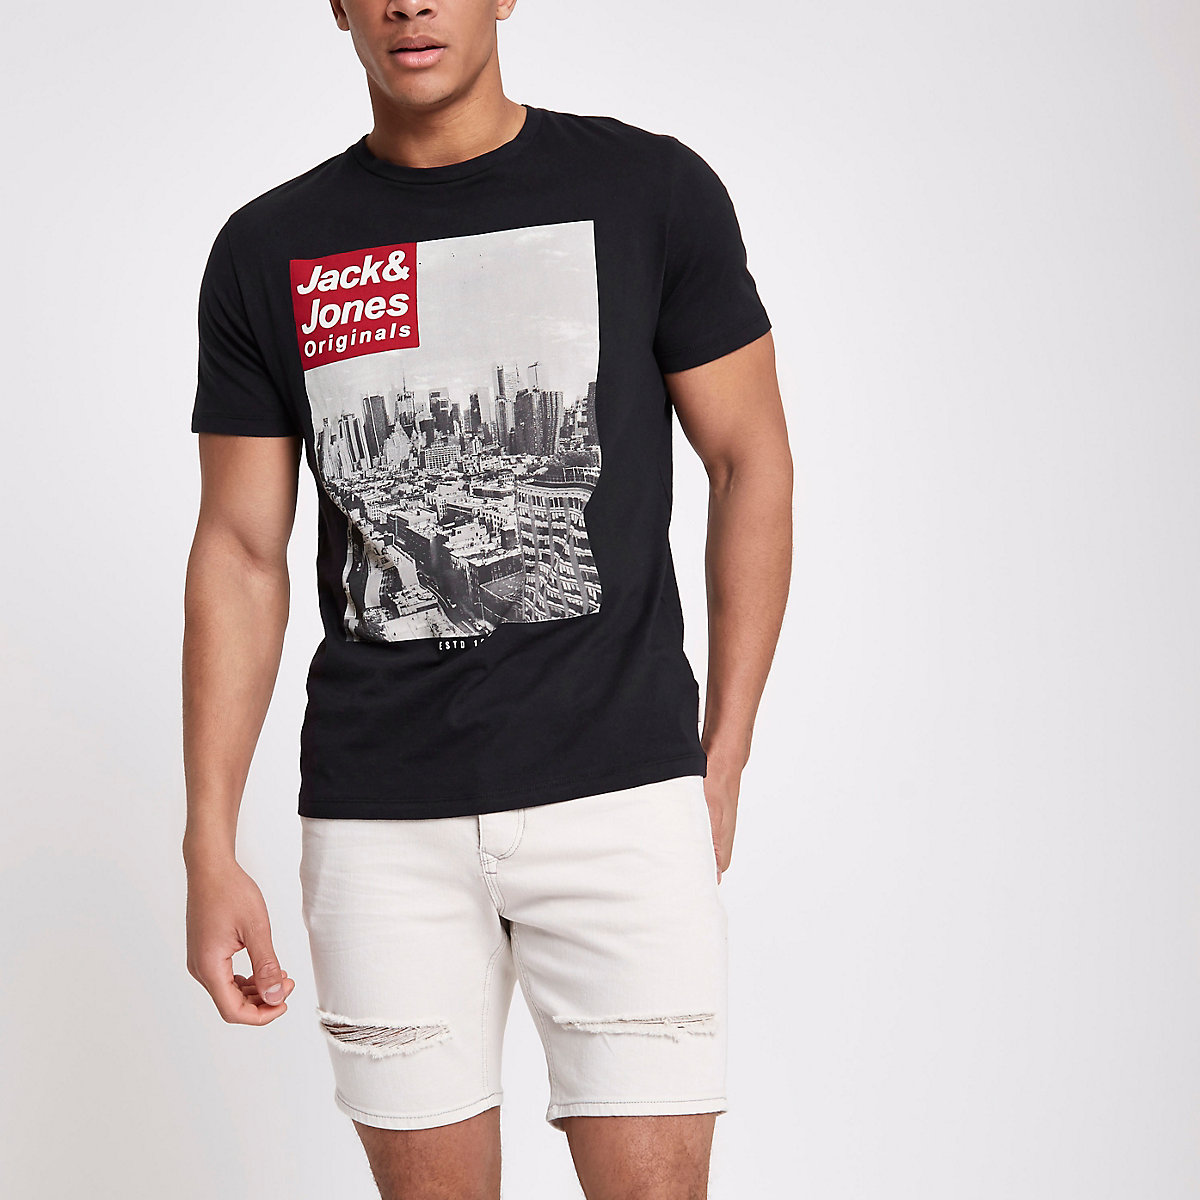 Jack & Jones Originals black photo T-shirt